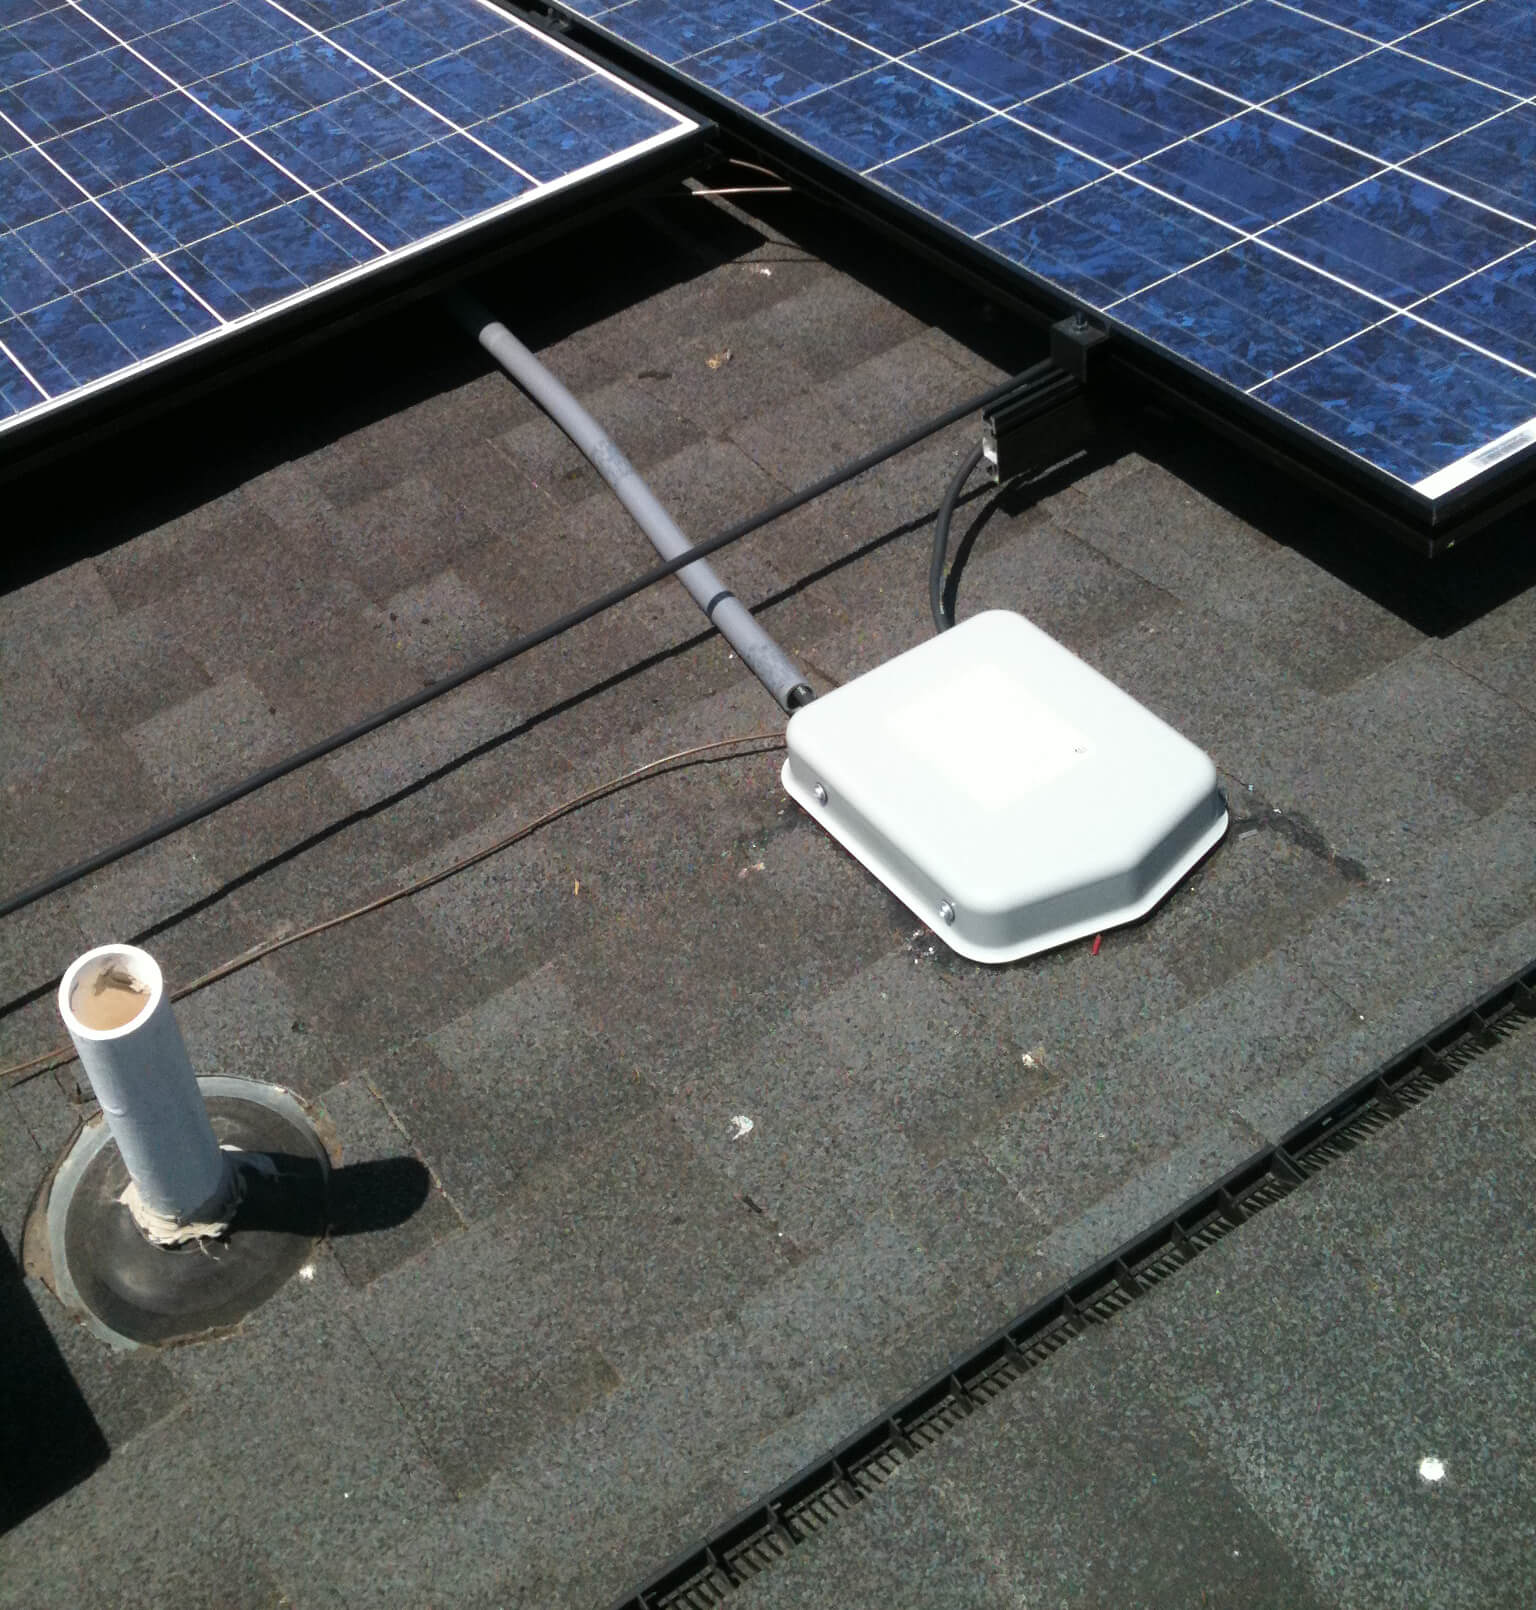 Roof with solar panels and inverter